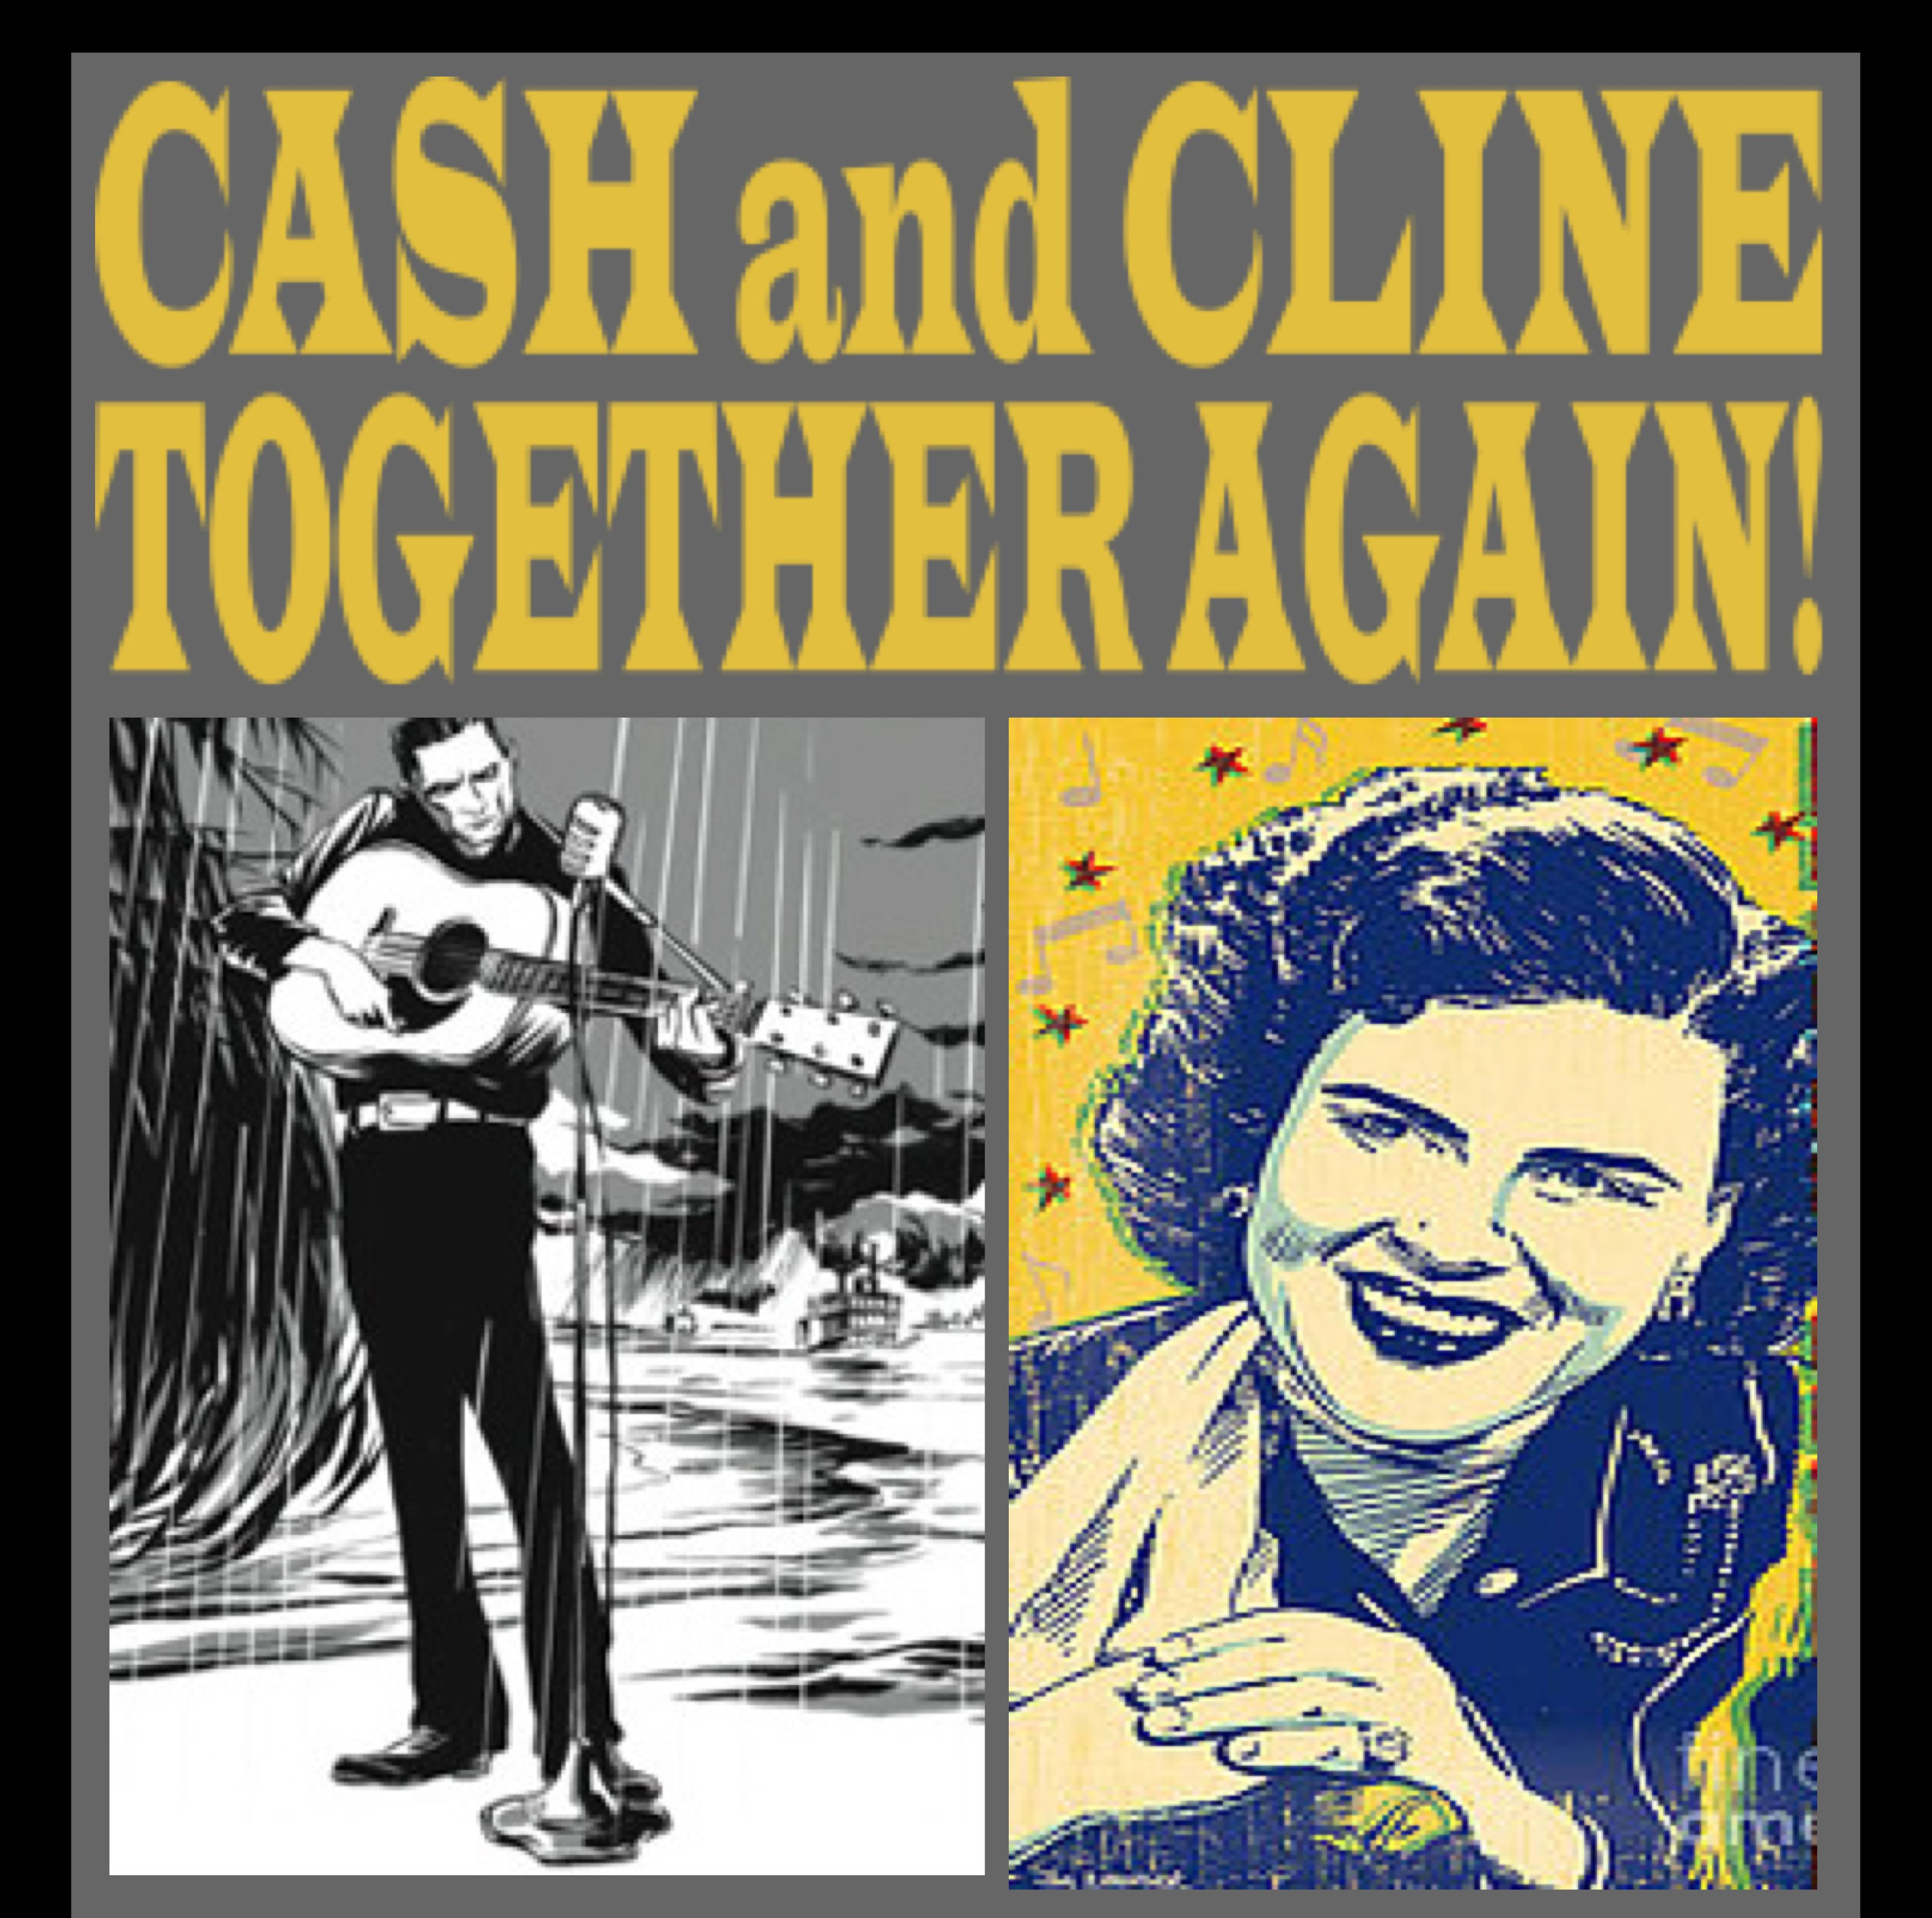 Cash and Cline